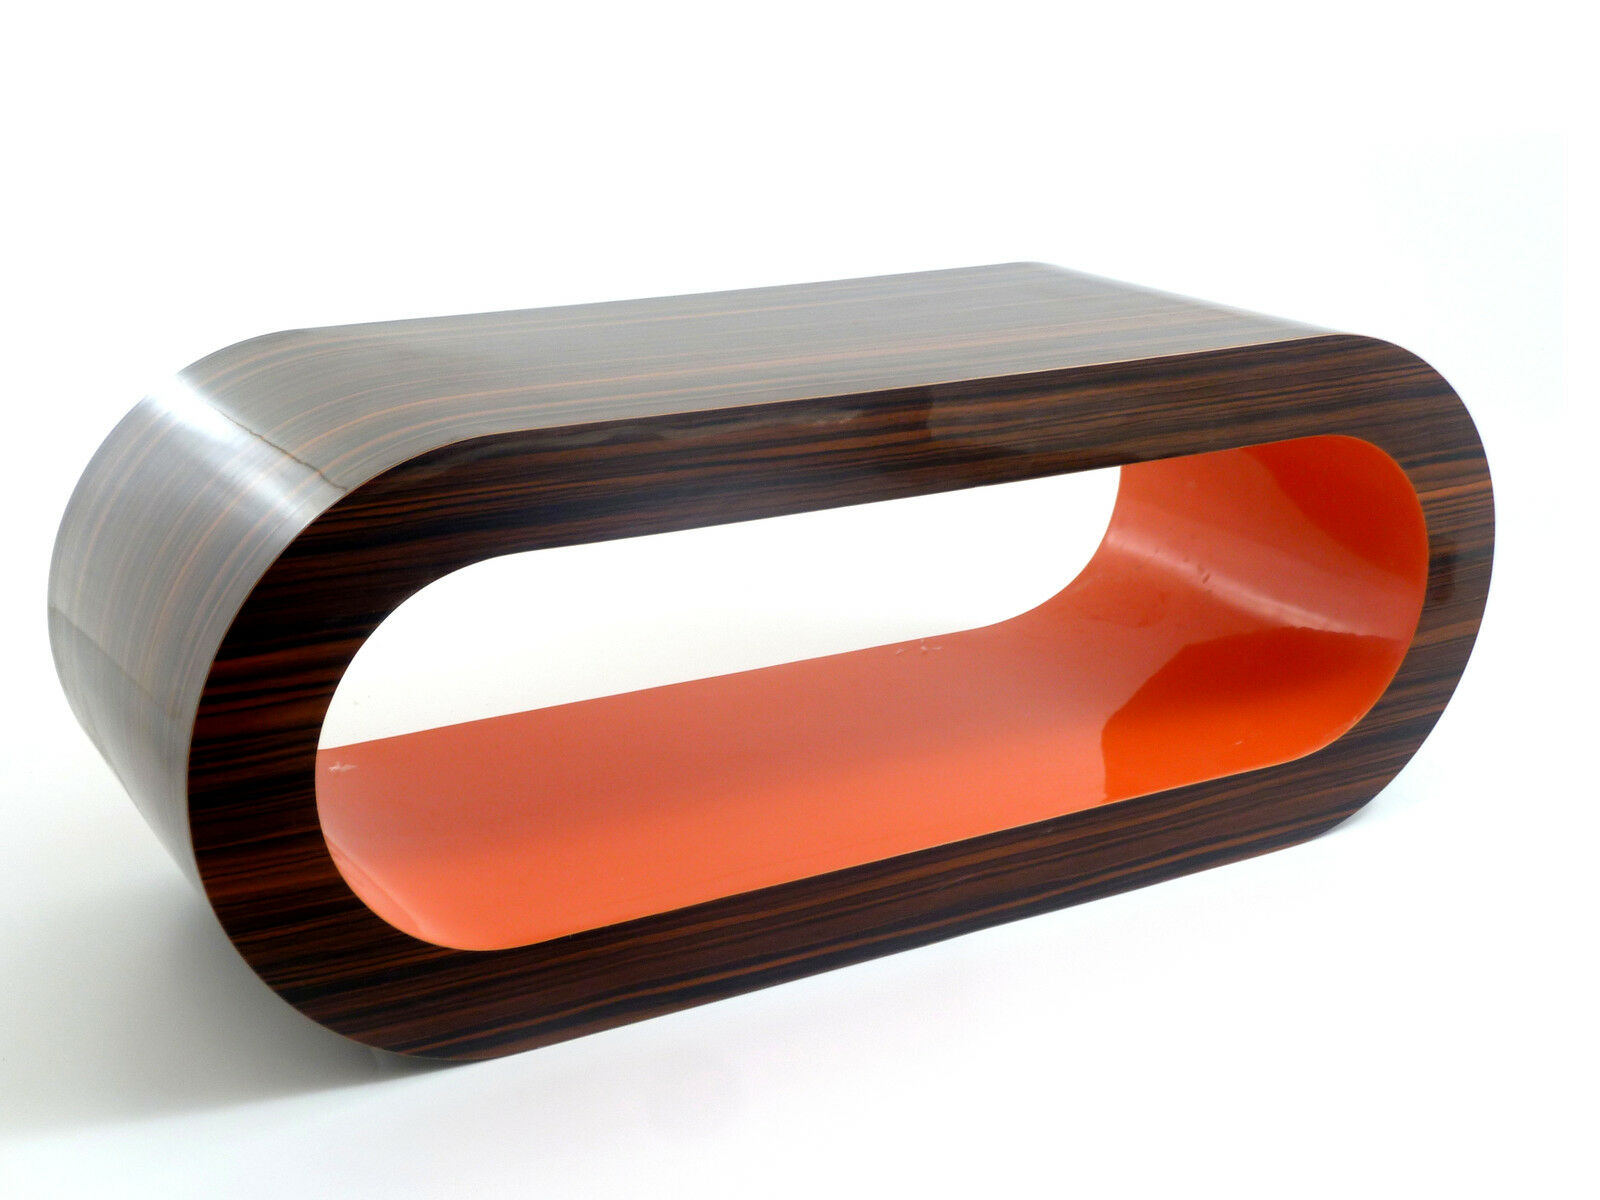 Bespoke Designer Wooden Coffee Table Medium 90cm Modern Contemporary Oval Ebay